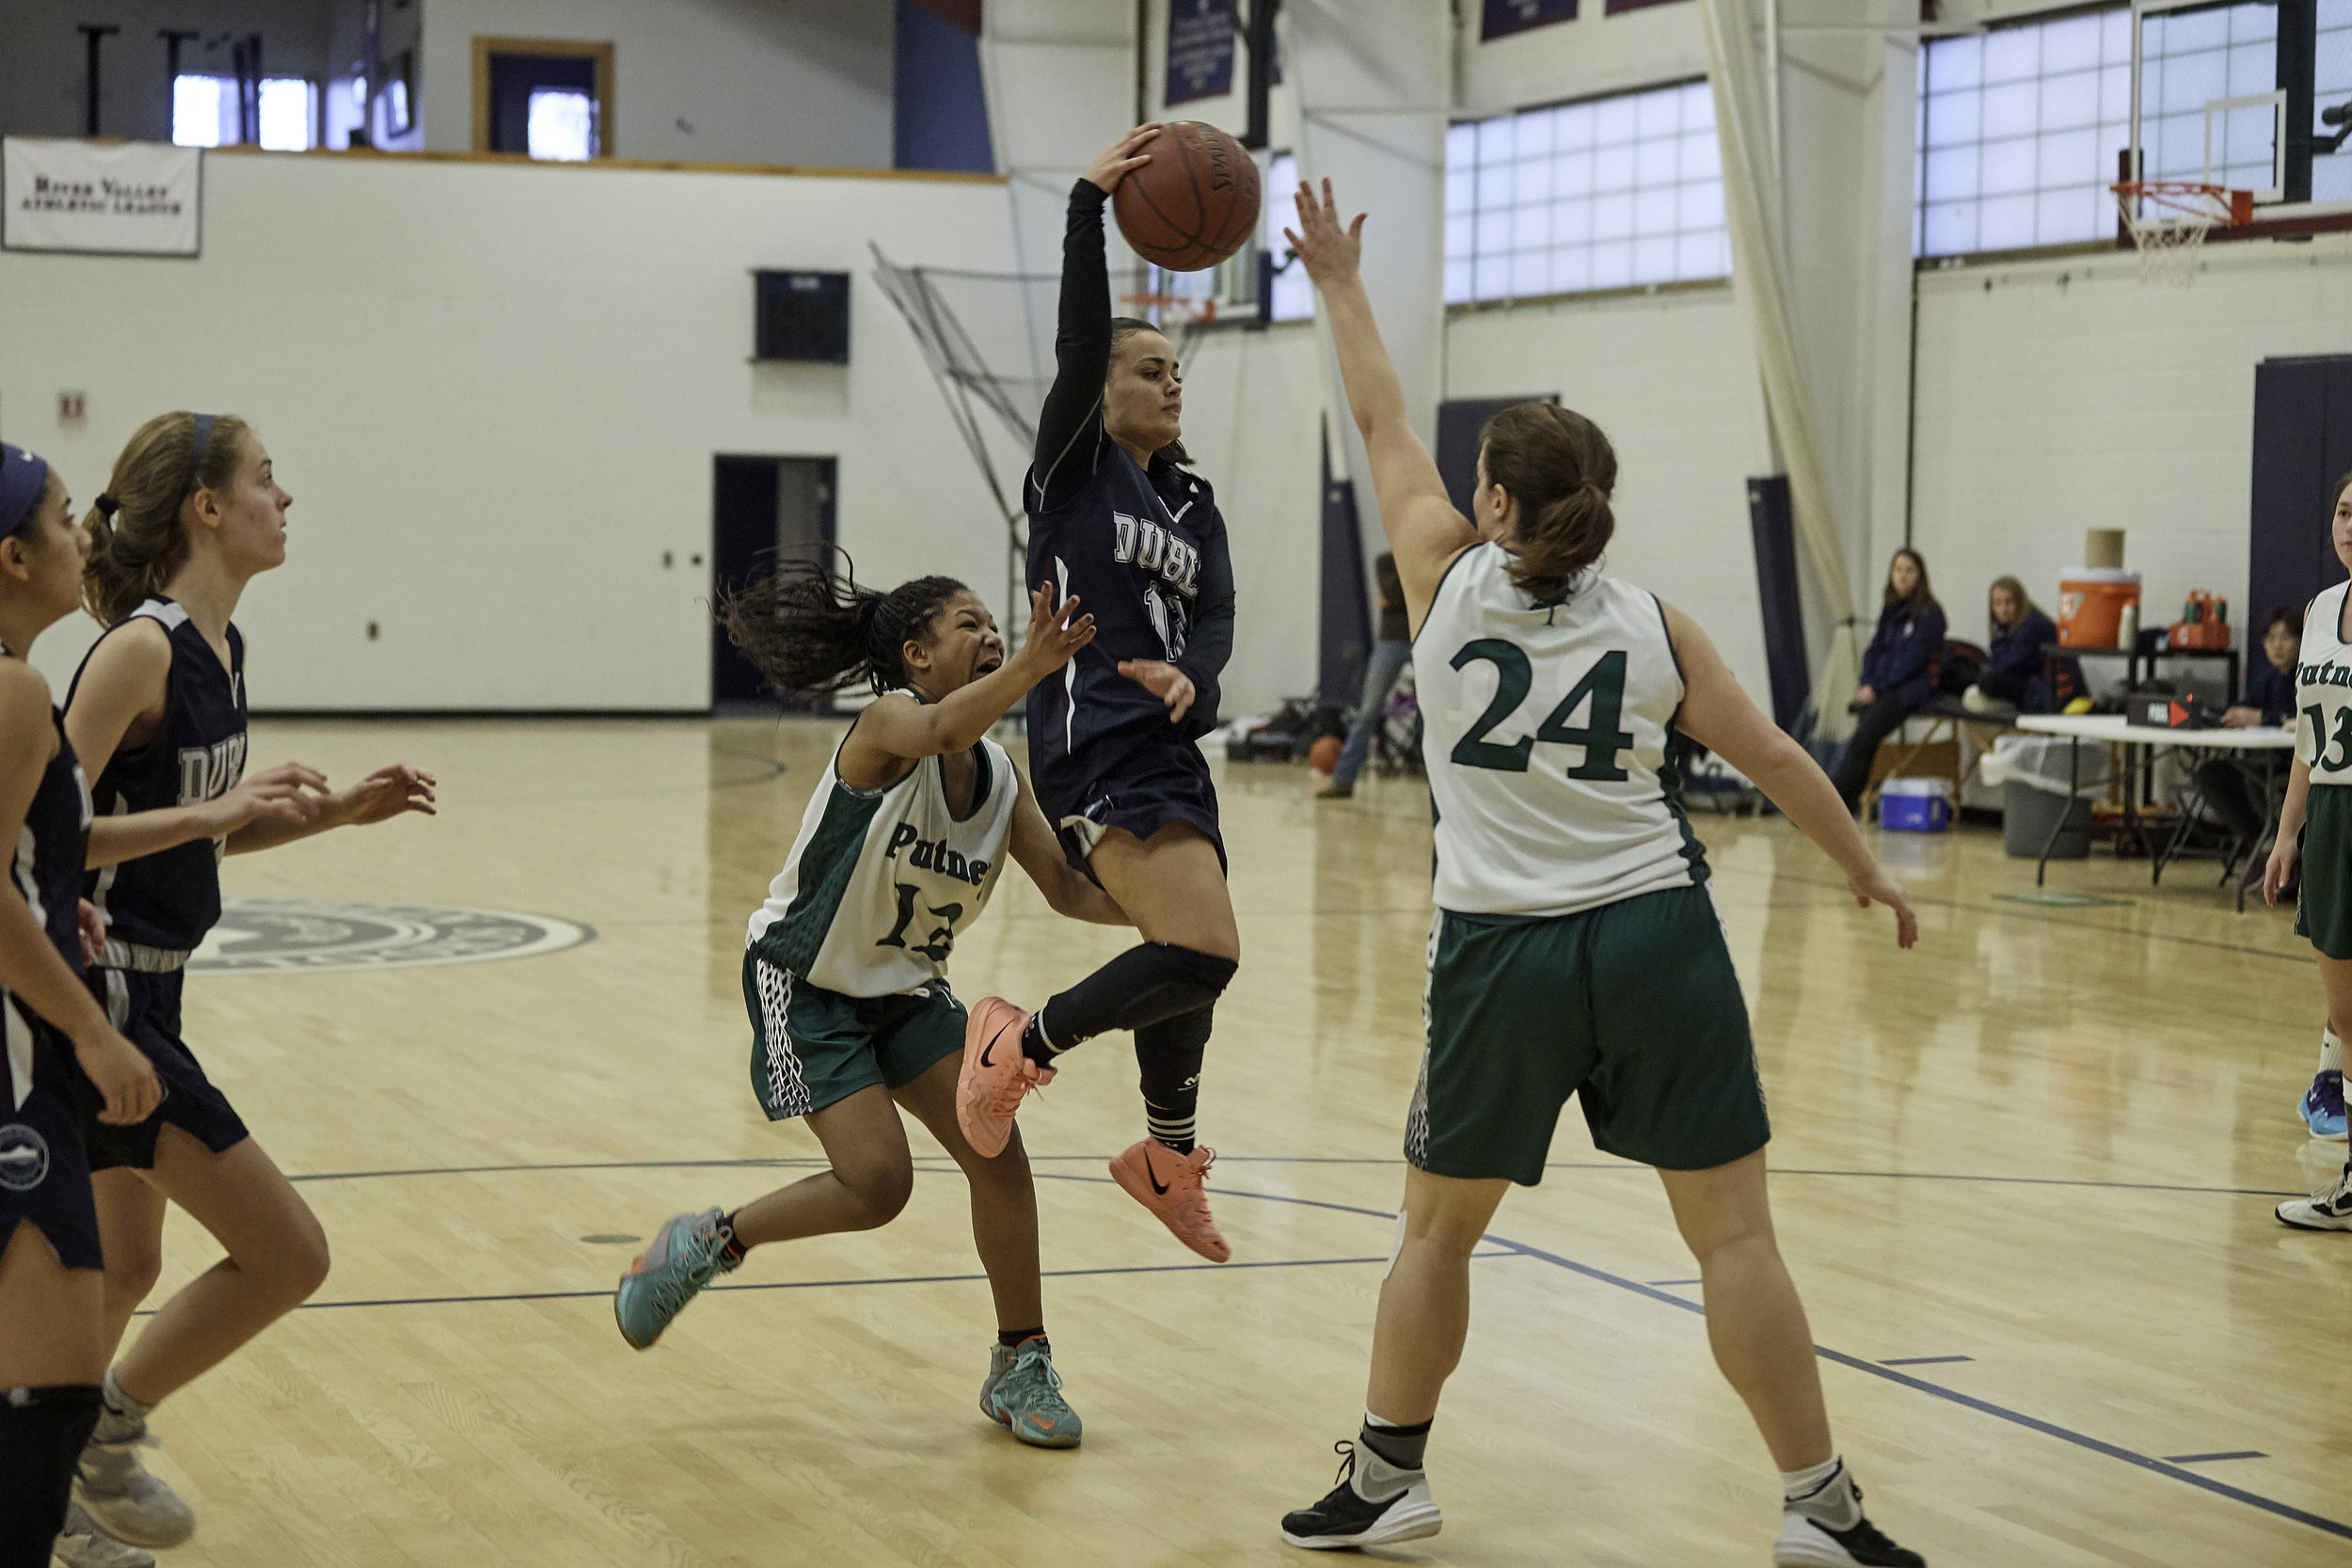 Basketball vs Putney School, February 9, 2019 - 167331.jpg